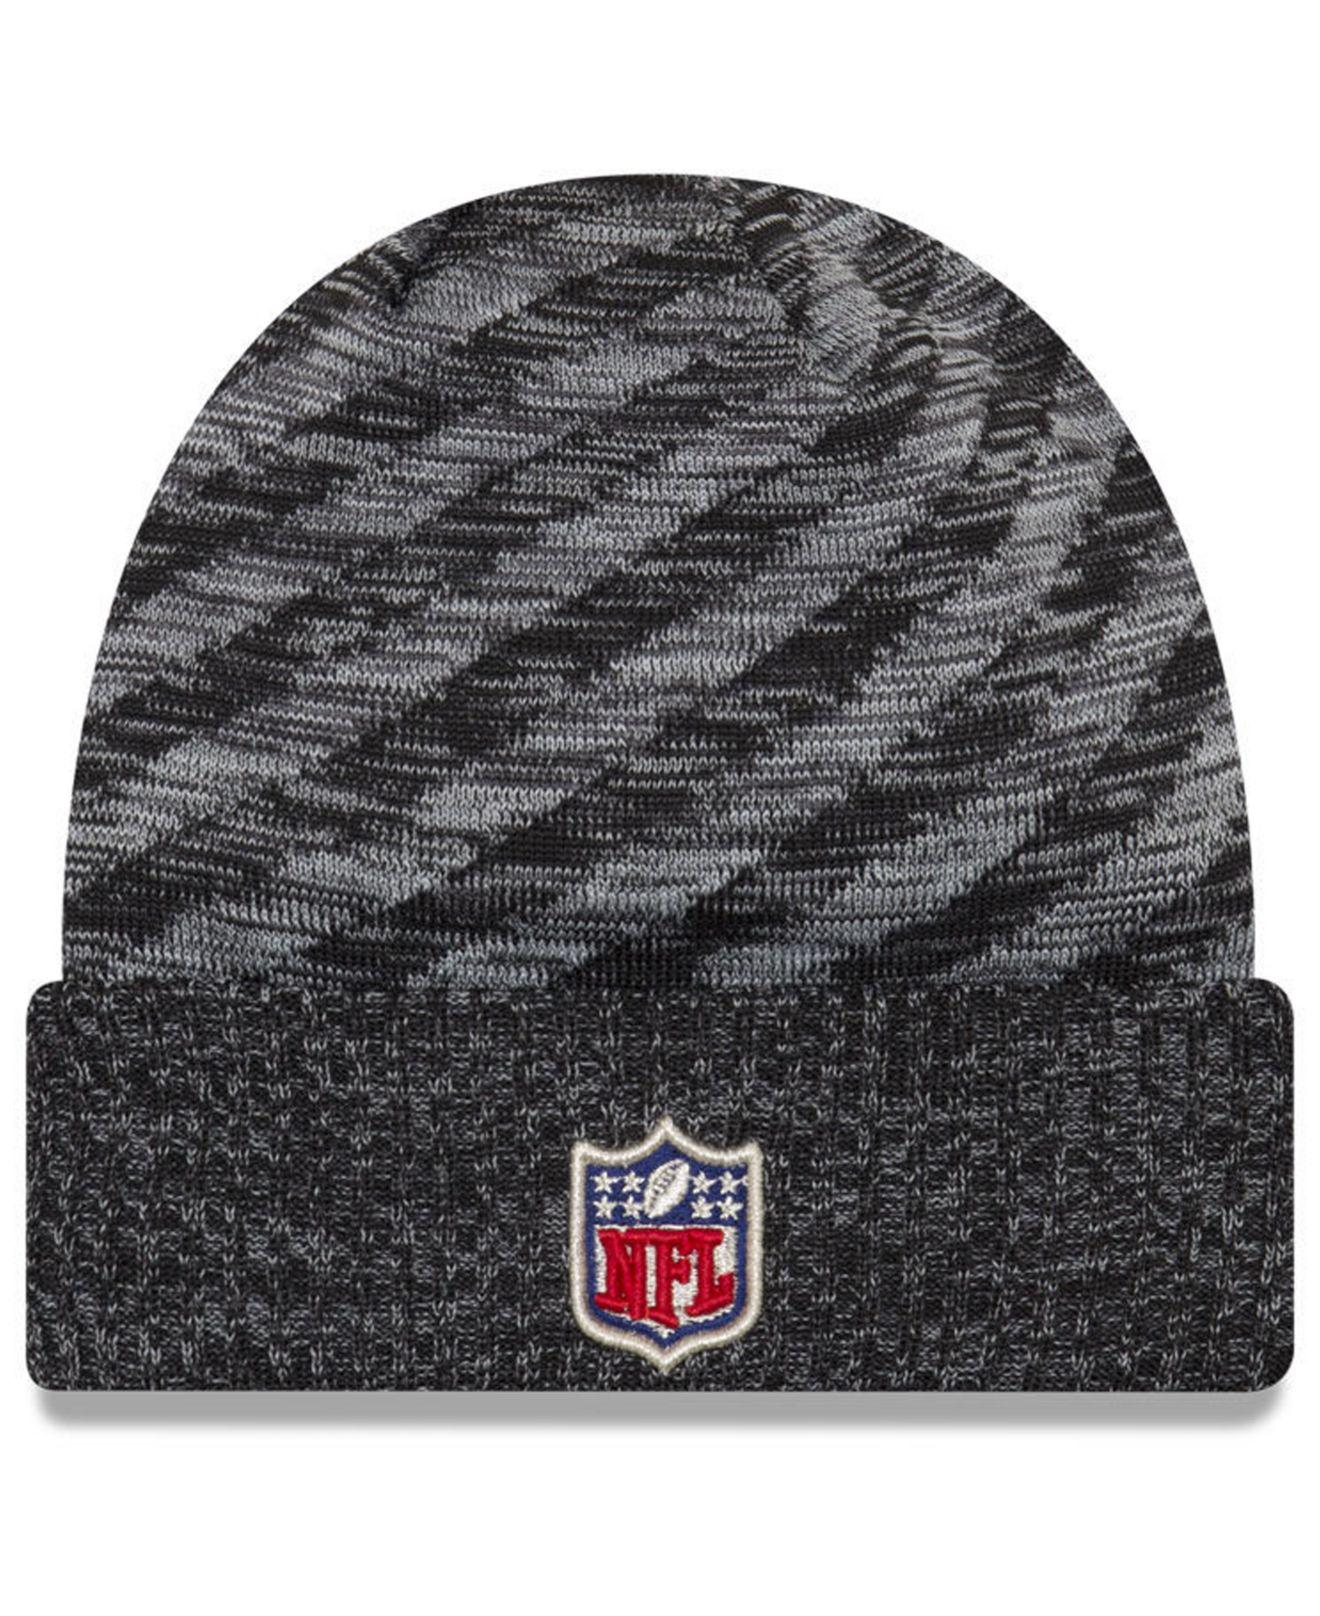 Lyst - Ktz San Francisco 49ers Touch Down Knit Hat in Black for Men b5d632aaa